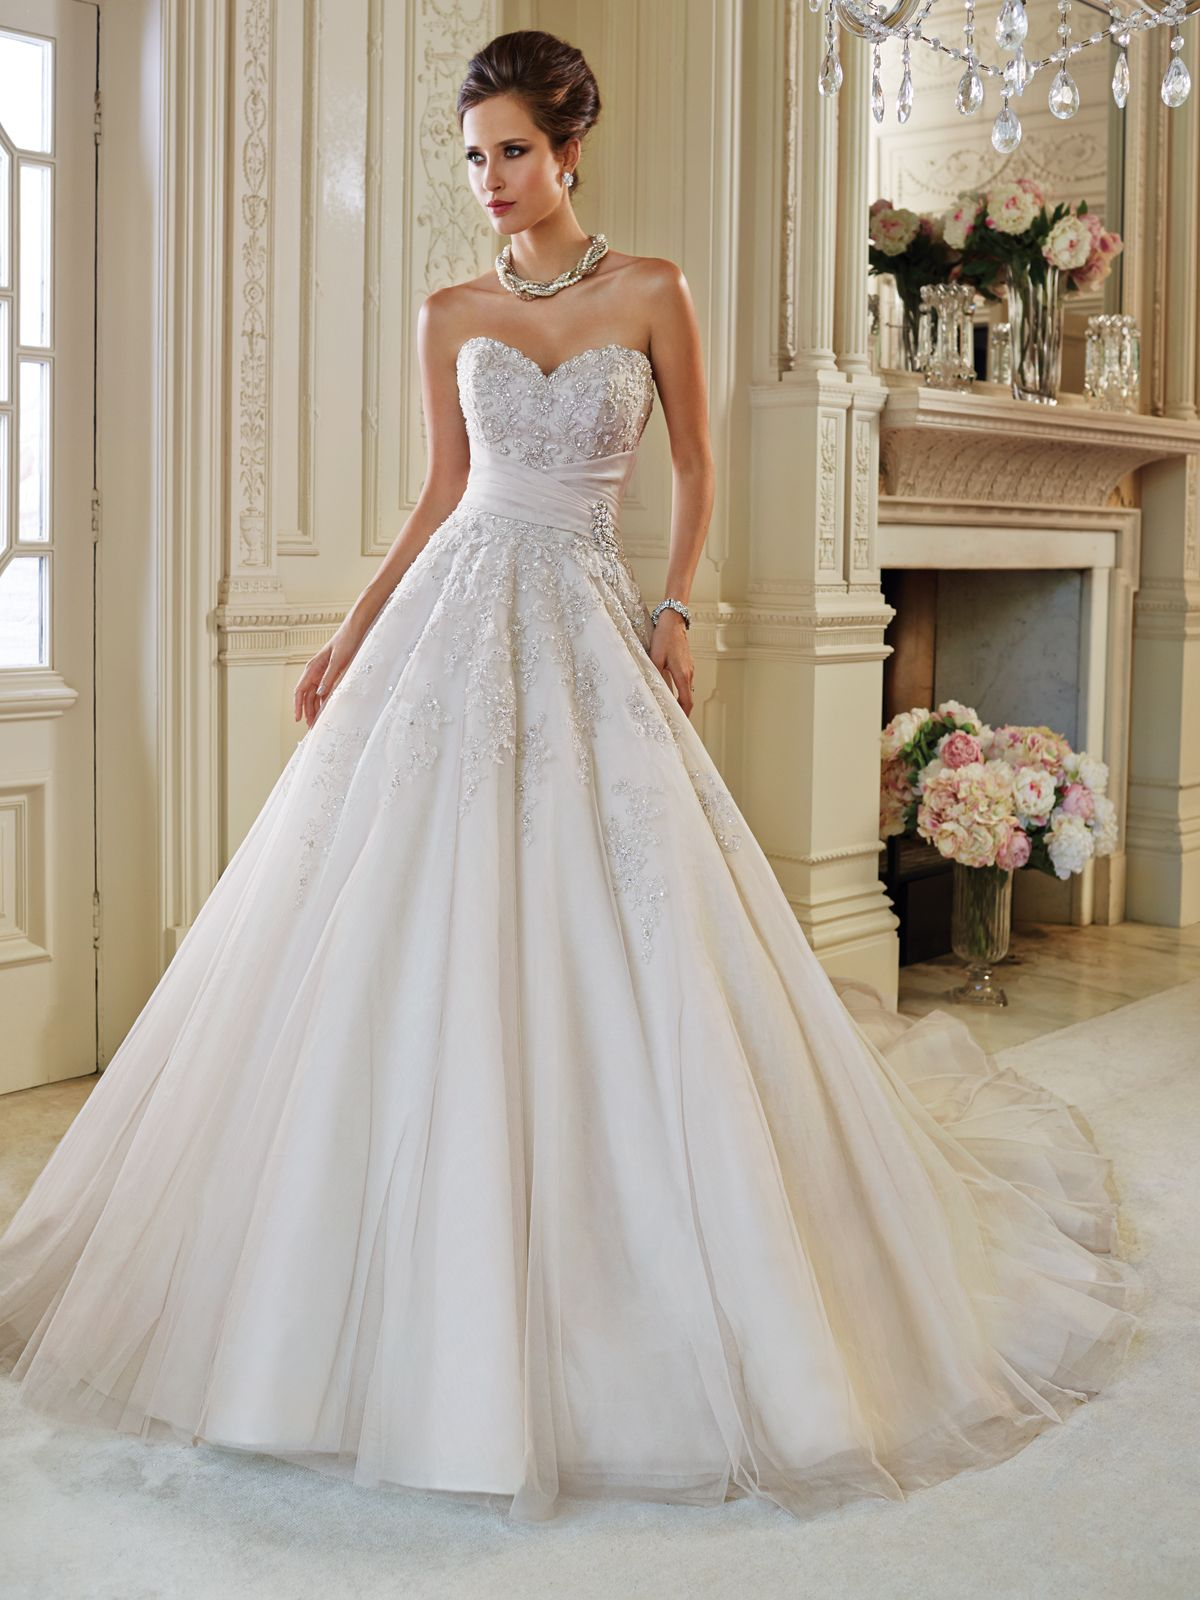 Ida -Sophia Tolli | Bridal dresses | Pinterest | Wedding dresses ...